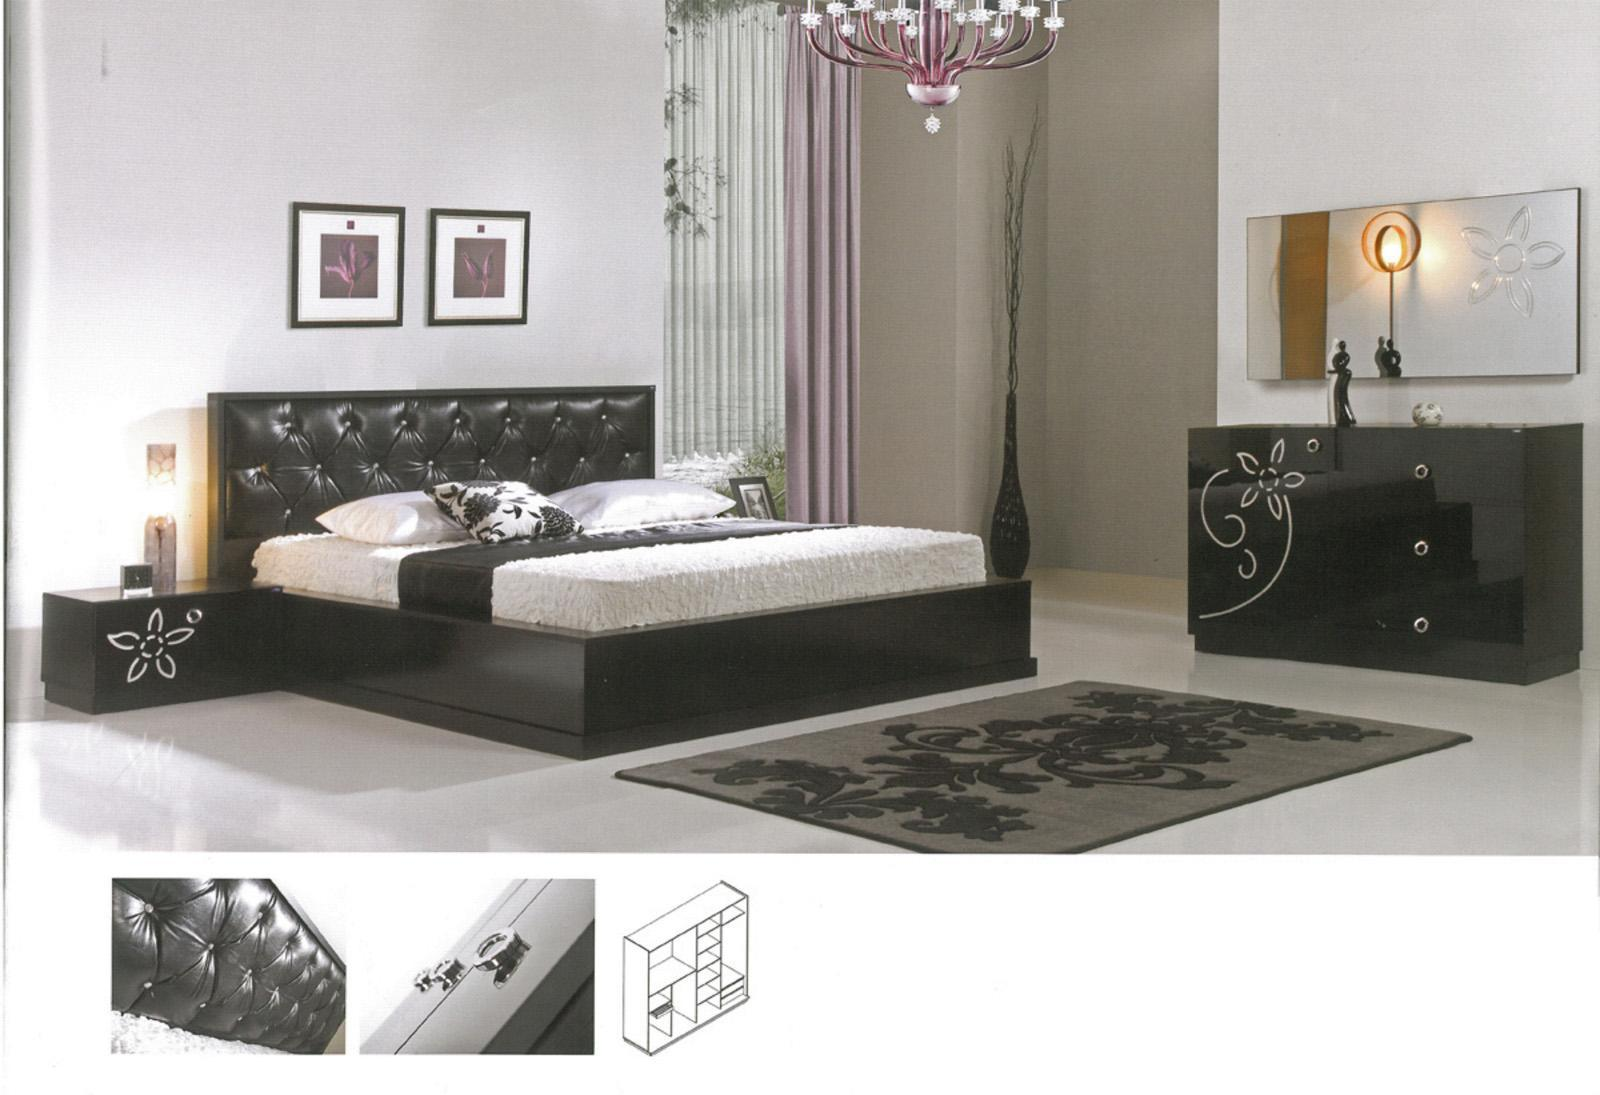 chambre a coucher moderne pas cher decoration murale bb pas cher d coration chambre deco bebe. Black Bedroom Furniture Sets. Home Design Ideas